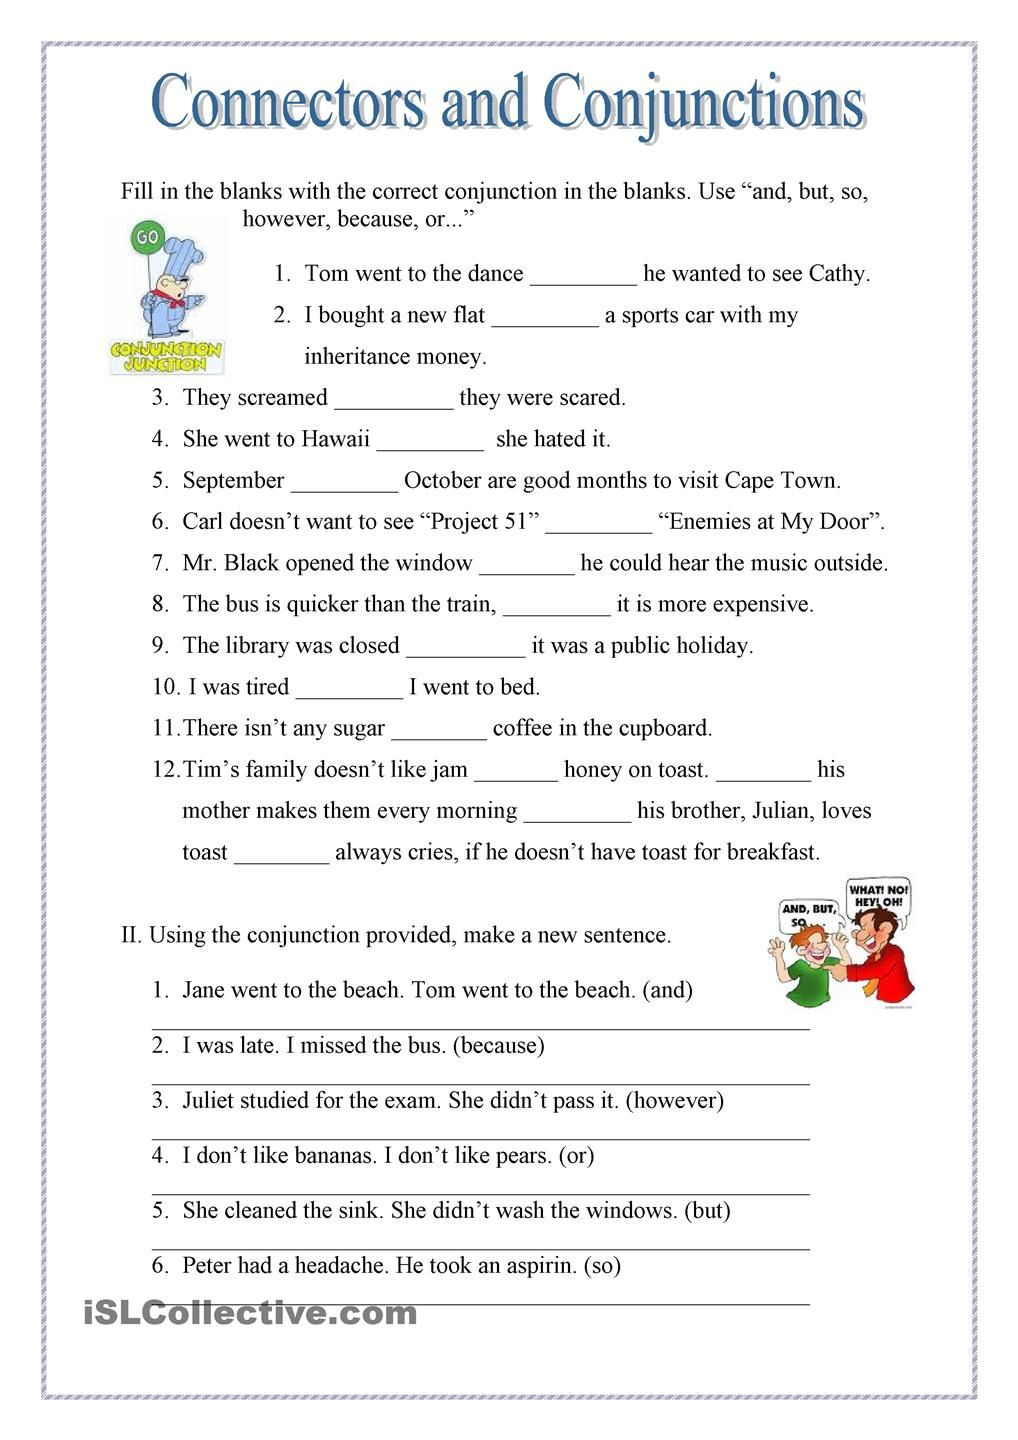 worksheet Worksheets On Connectors In English Grammar conjuctions and connectors pinterest english grammar worksheetsgrammar